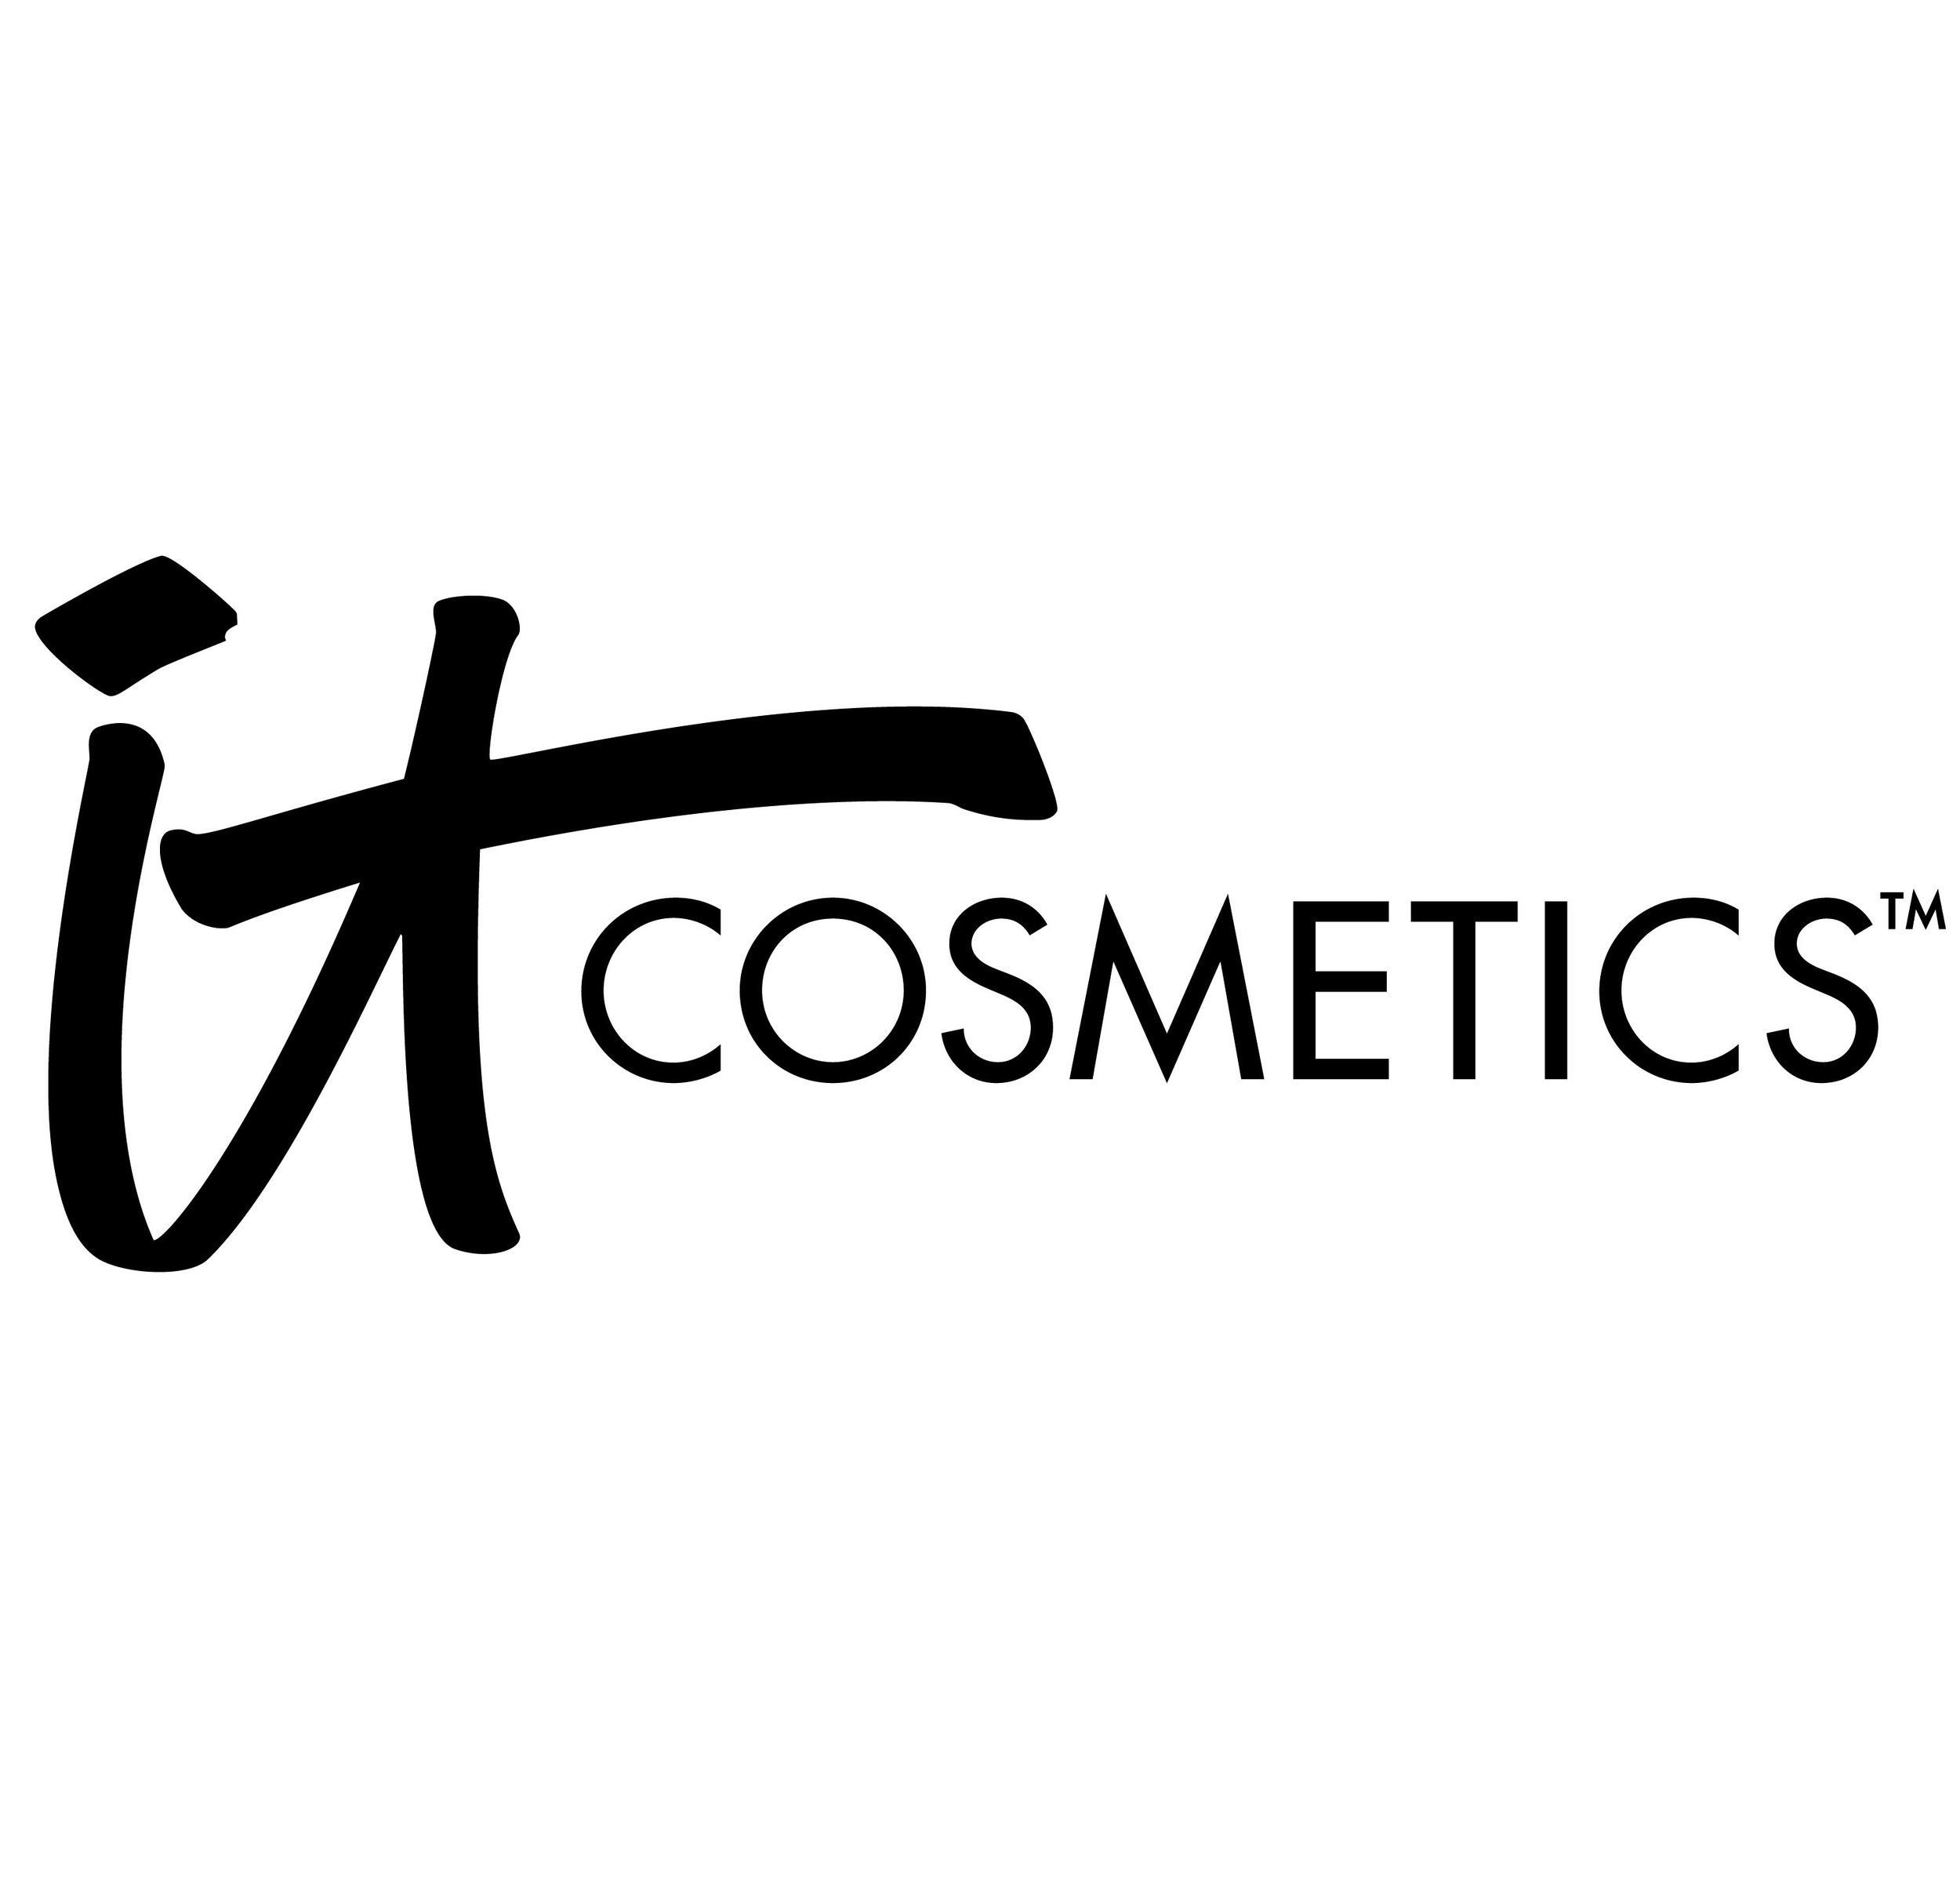 TSG Consumer Partners Announces Sale Of IT Cosmetics